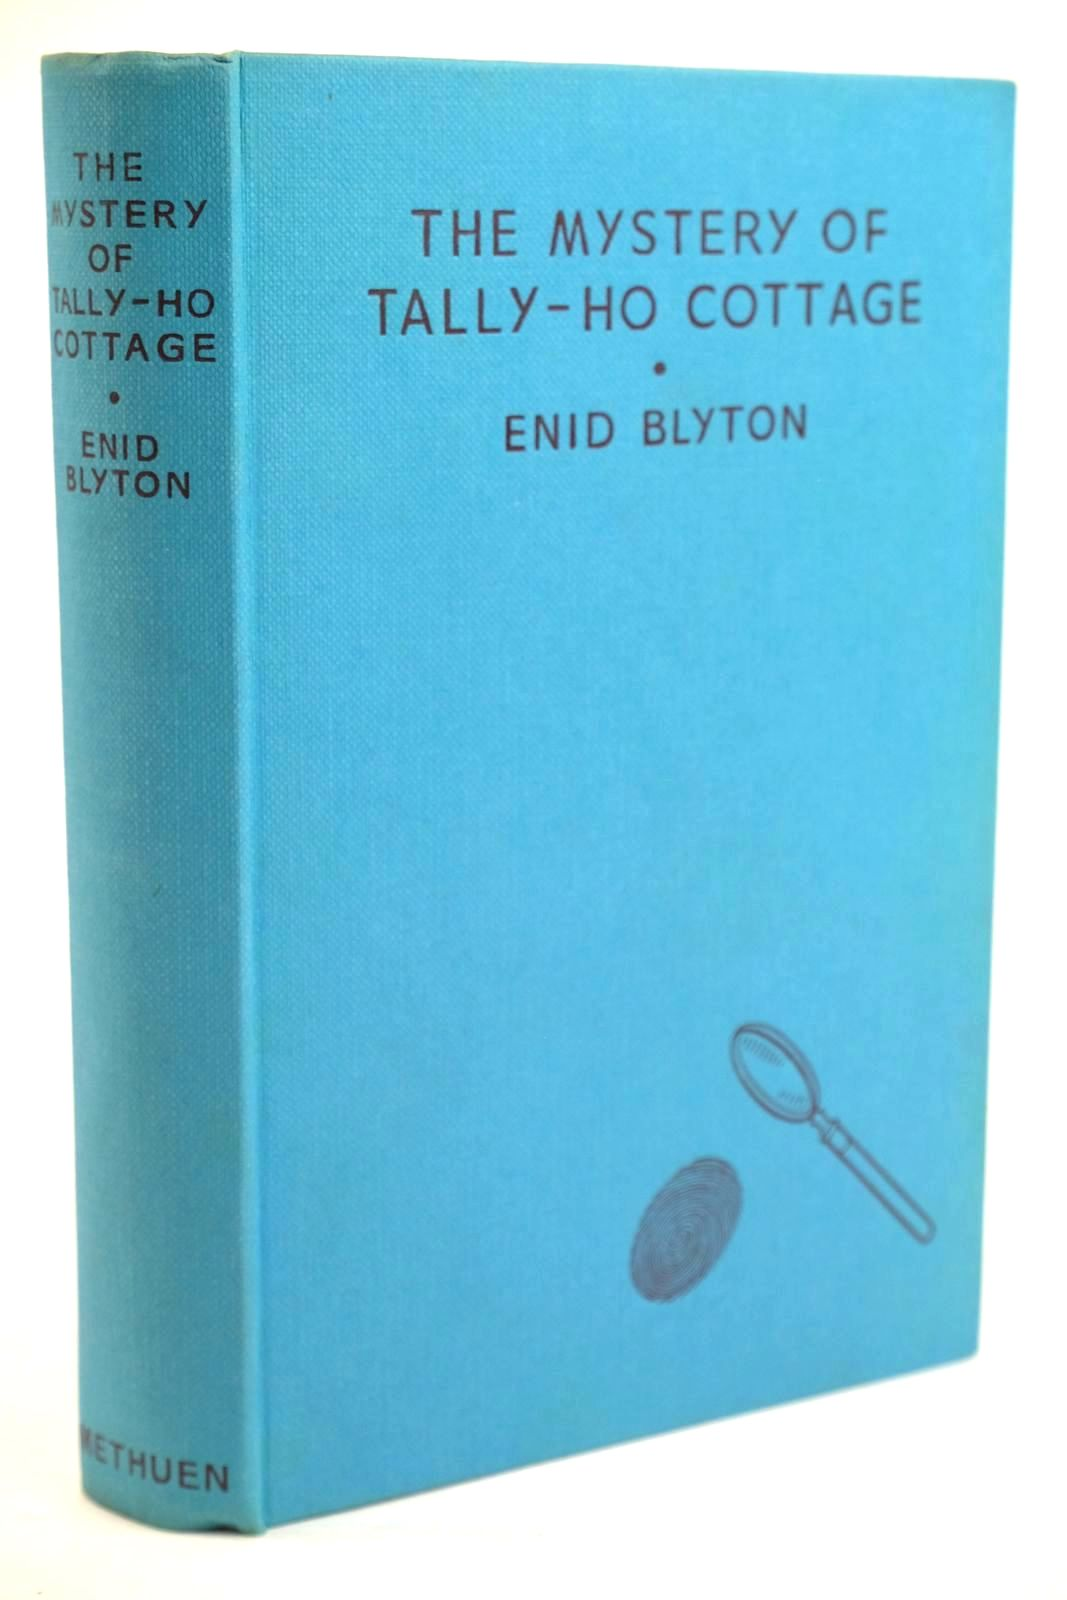 Photo of THE MYSTERY OF TALLY-HO COTTAGE written by Blyton, Enid illustrated by Evans, Treyer published by Methuen & Co. Ltd. (STOCK CODE: 1319771)  for sale by Stella & Rose's Books